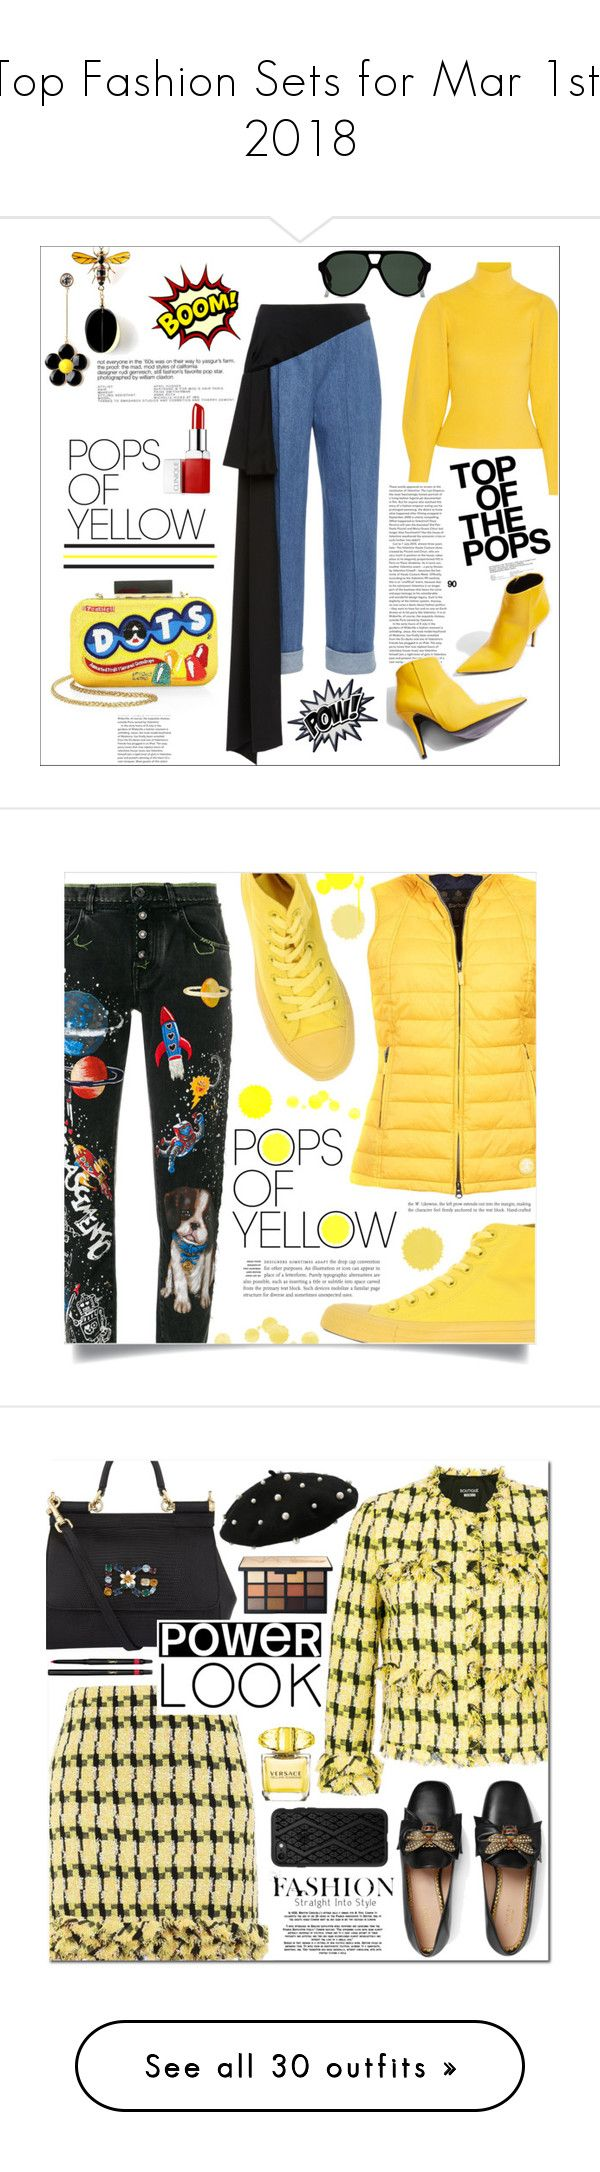 """Top Fashion Sets for Mar 1st, 2018"" by polyvore ❤ liked on Polyvore featuring Alice + Olivia, Thierry Mugler, Pôdevache, Clinique, Gucci, Topshop, yellow, gethappy, polyvoreeditorial and polyvorecontest"